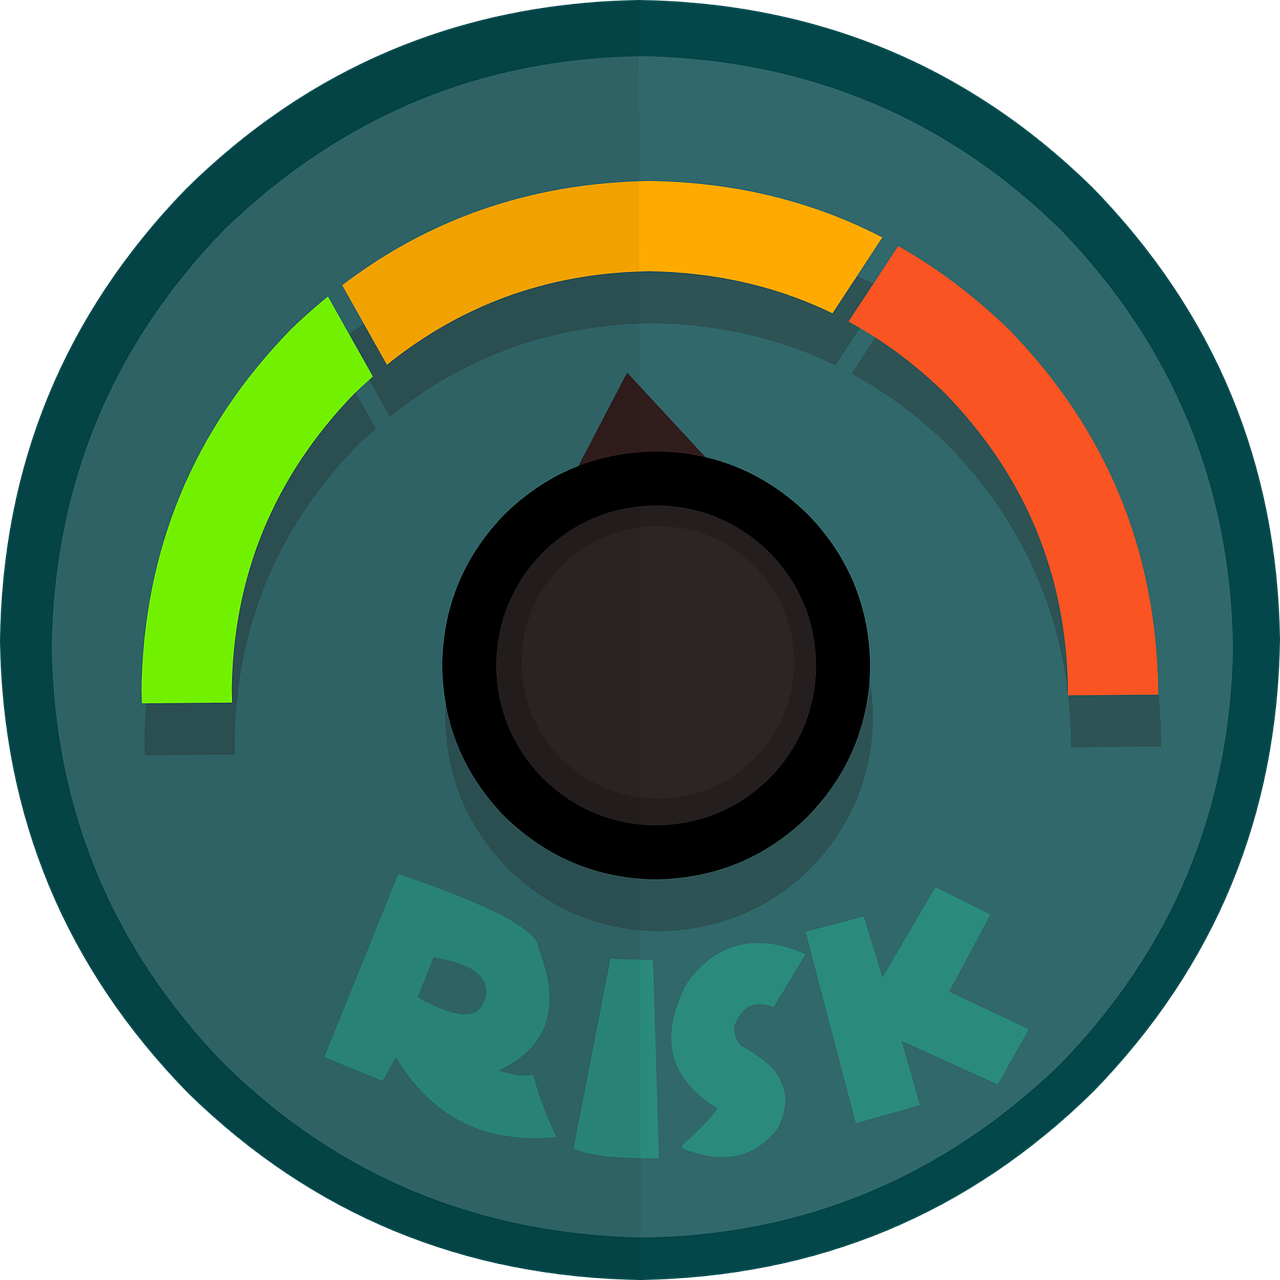 risk-management-dial-trust0in-capability